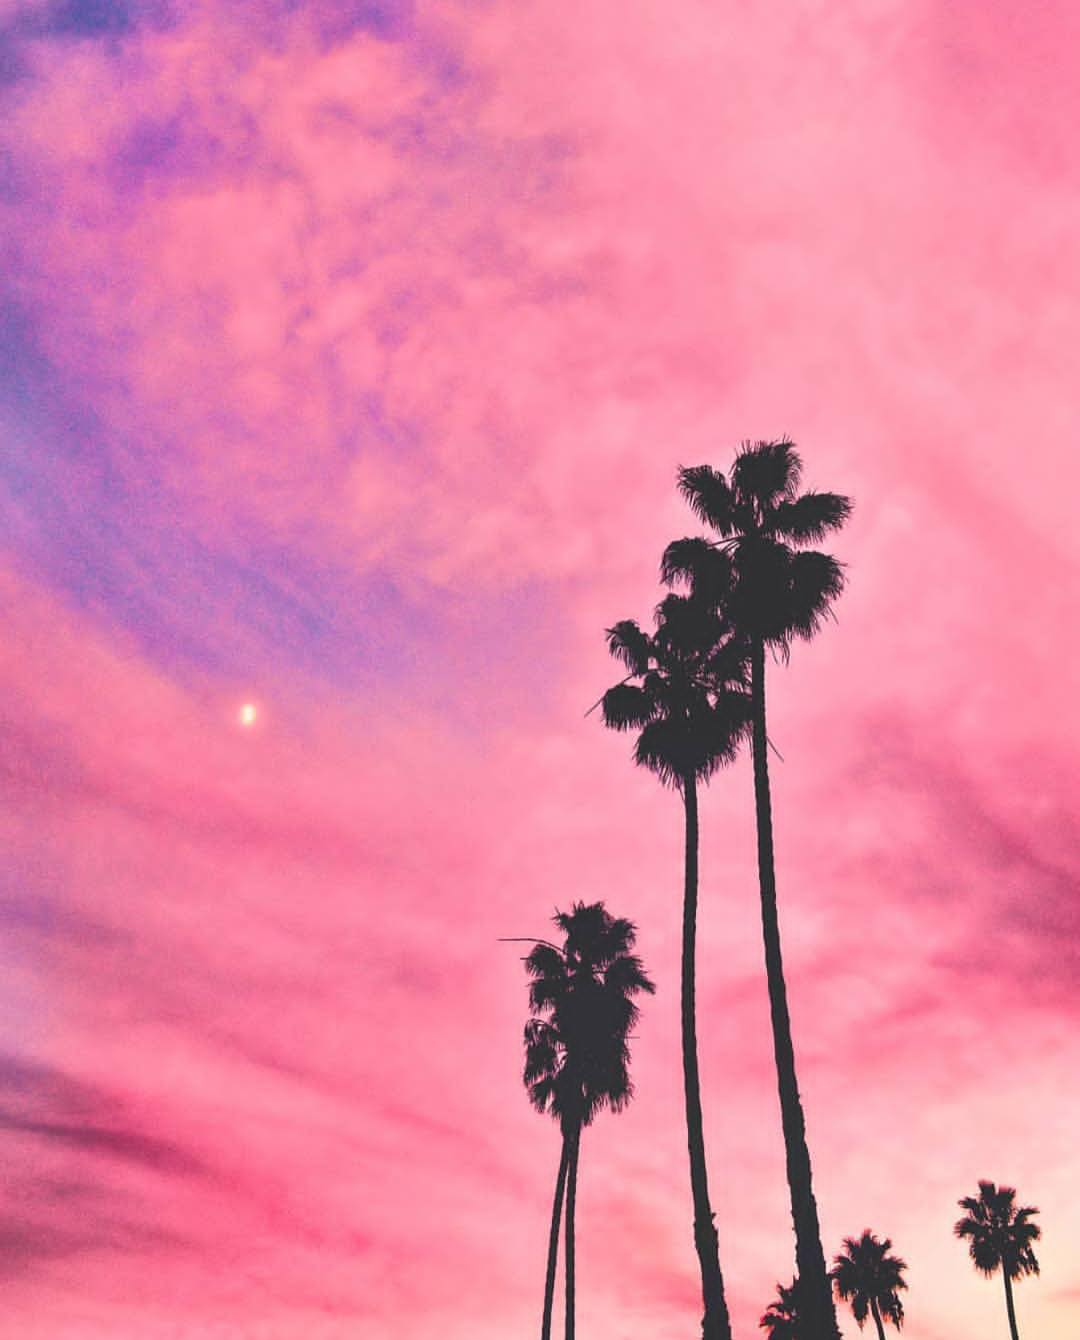 Seen here in the home of broccolo, the cloudy walls have sea, sky, boats, and. BEST TOP 10 PINK AESTHETIC WALLPAPERS 2020.